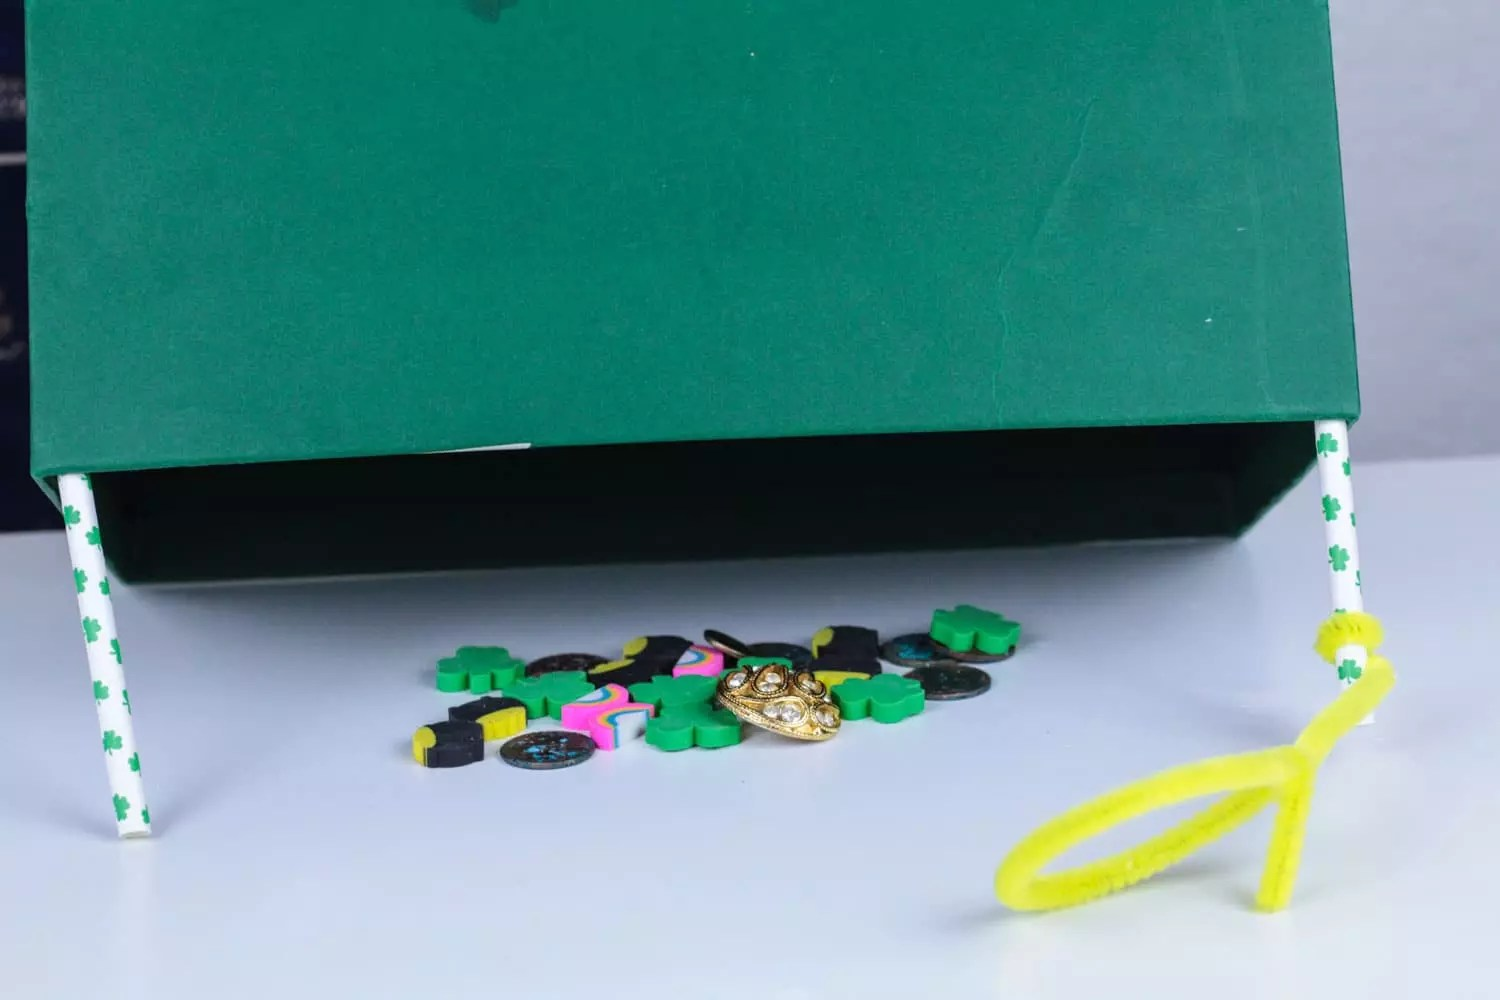 Simple And Fun Leprechaun Trap Stem Activity For Kids